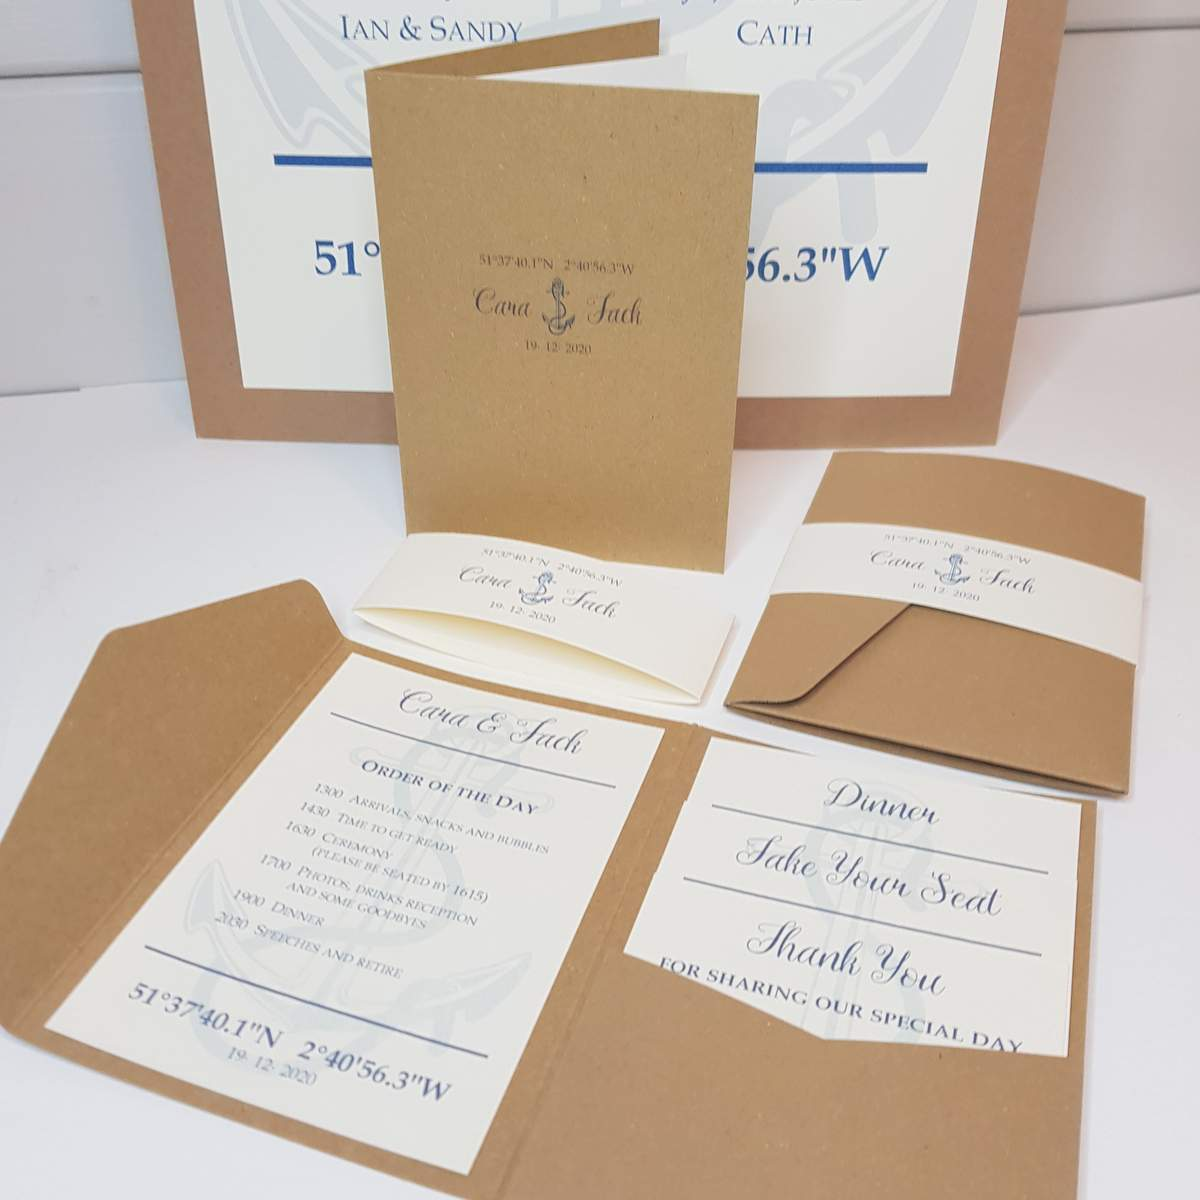 nautical theme wedding stationery with an anchor design made from recycled card